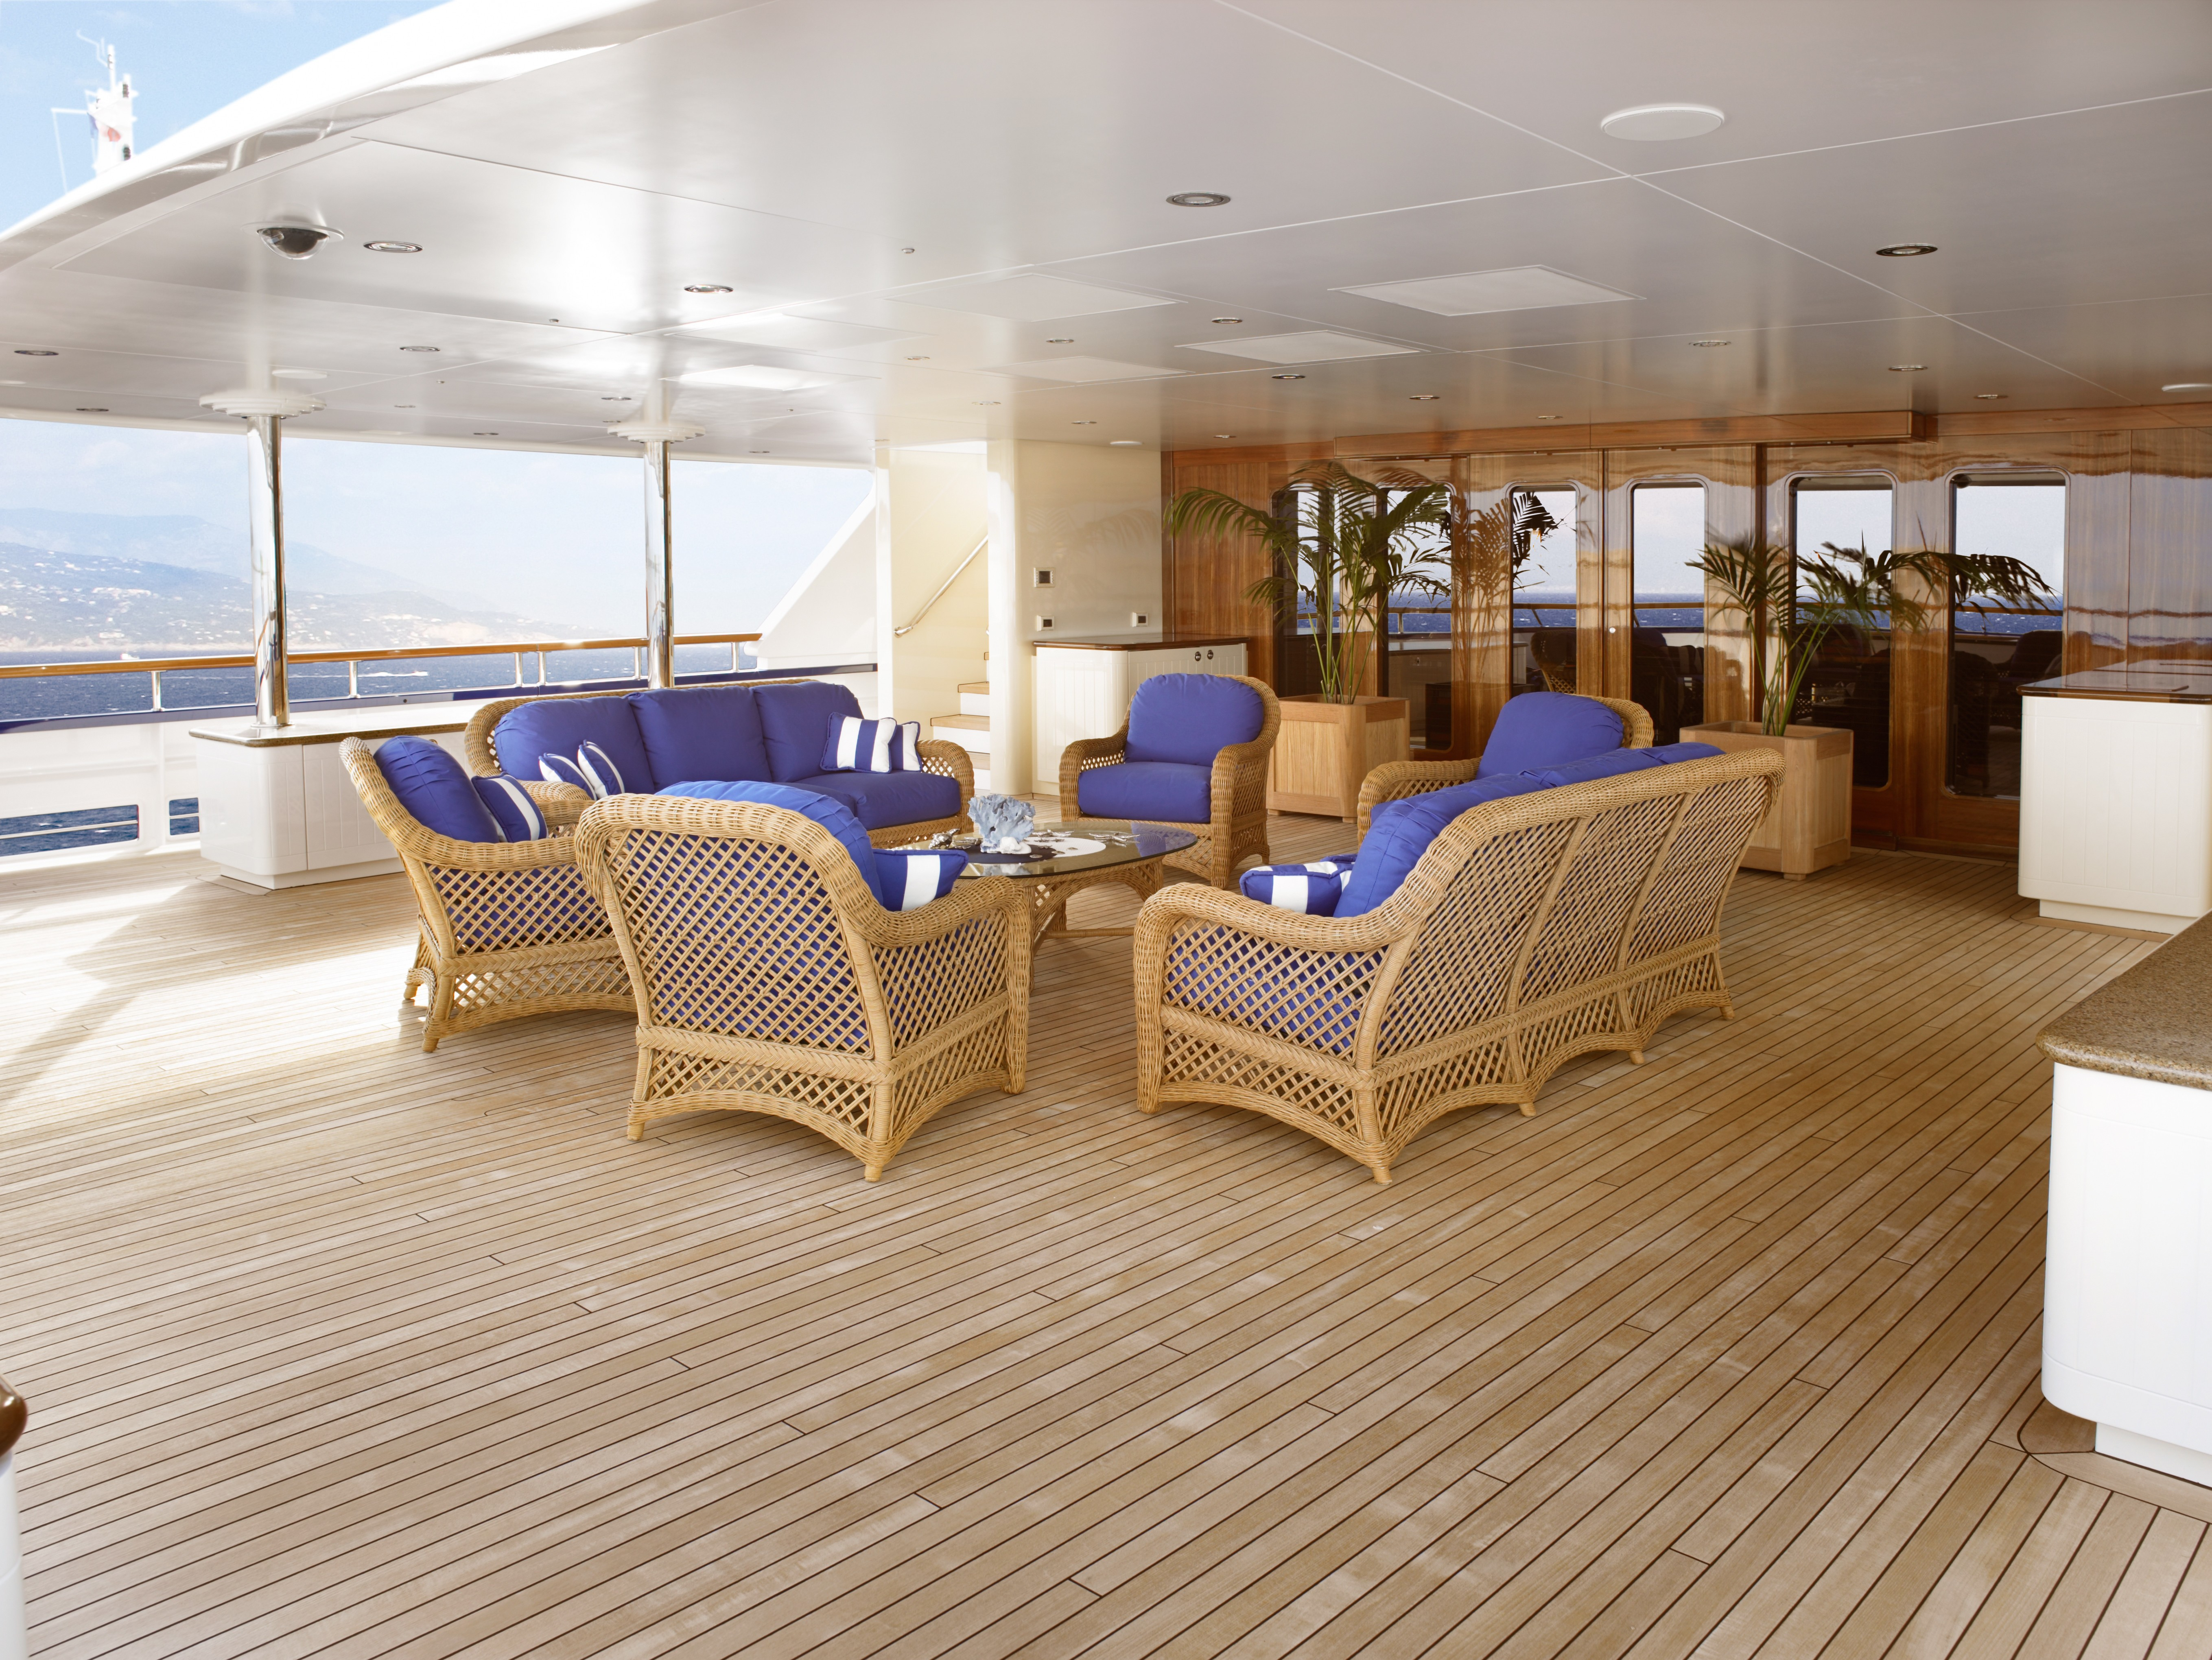 upper deck lounging area